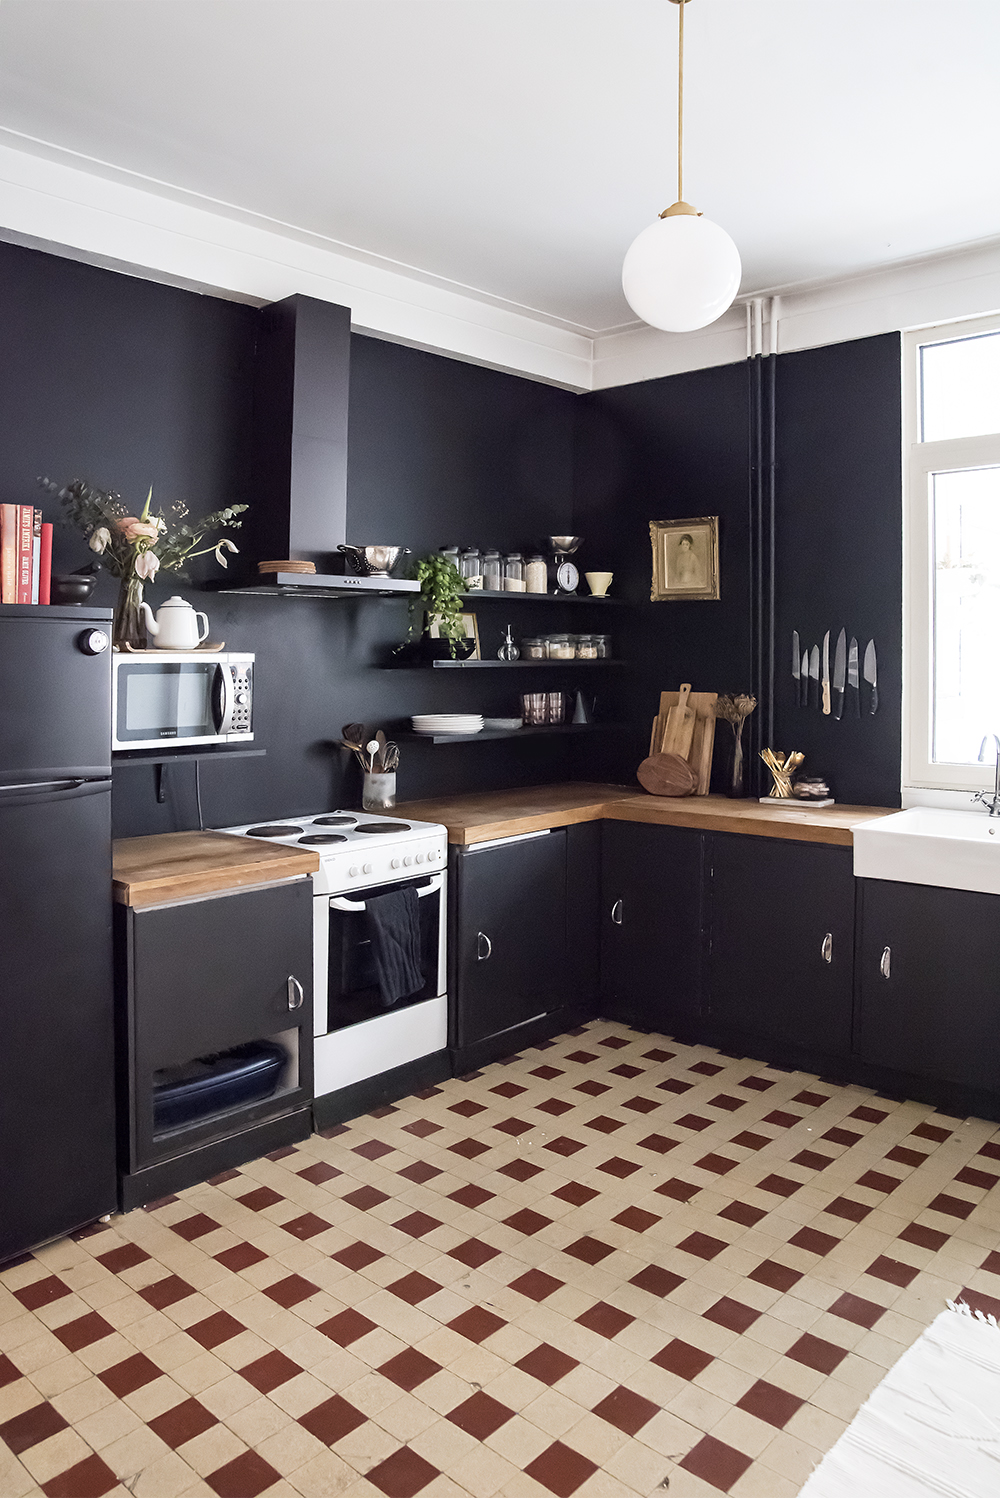 attractive Kitchen Walls Pictures Part - 15: Home Renovation: Black Walls in the Kitchen - No Glitter No Glory - Pitch  Black